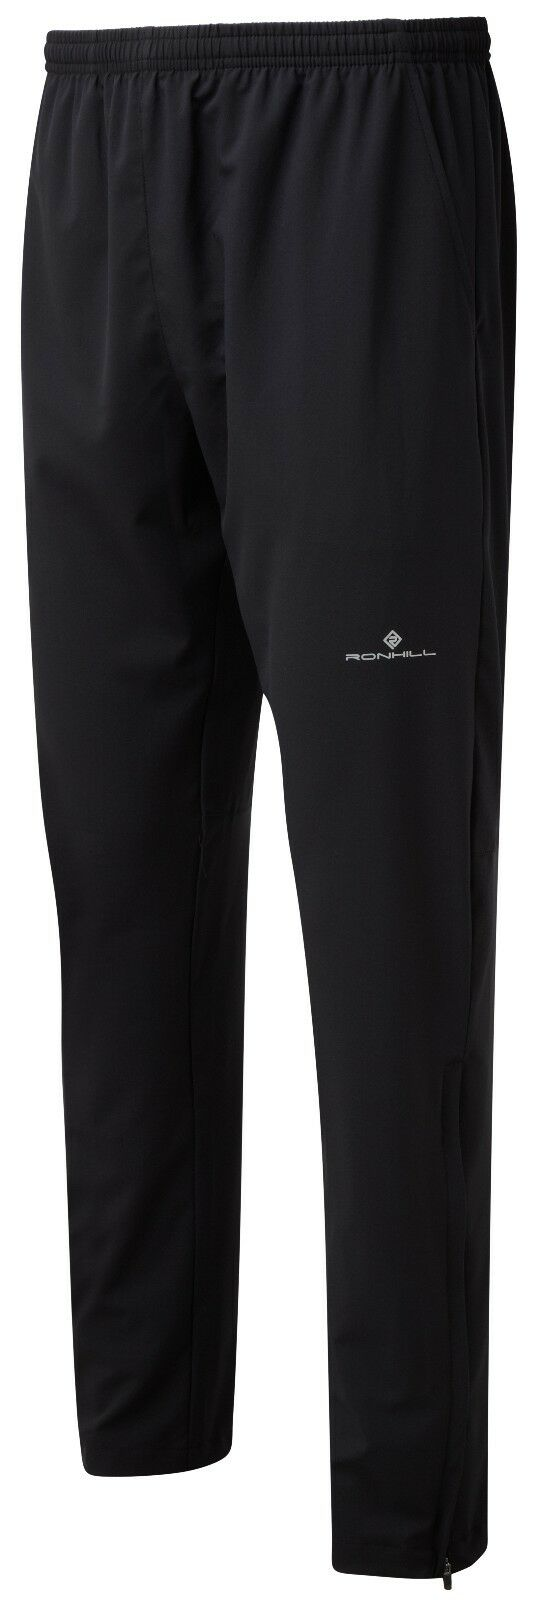 Ronhill Men's Everyday Training Pants Outdoor Pursuits Warm Up Running Trousers